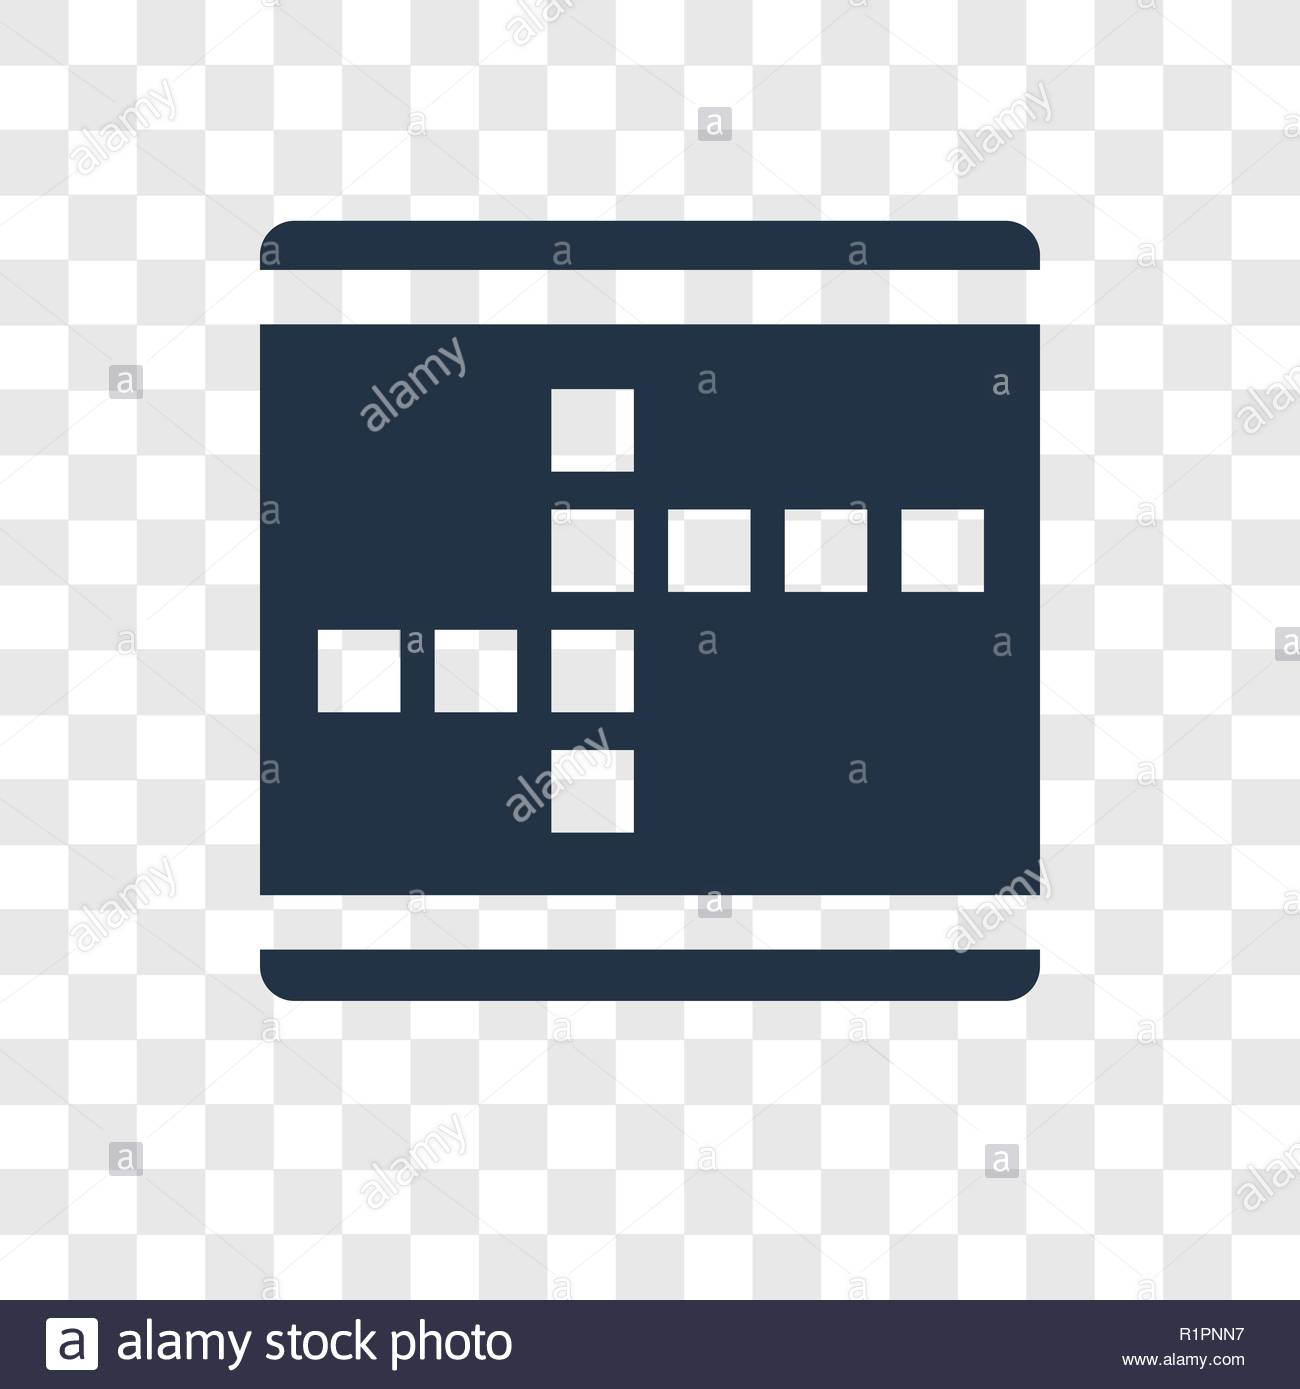 Crossword vector icon isolated on transparent background 1300x1389